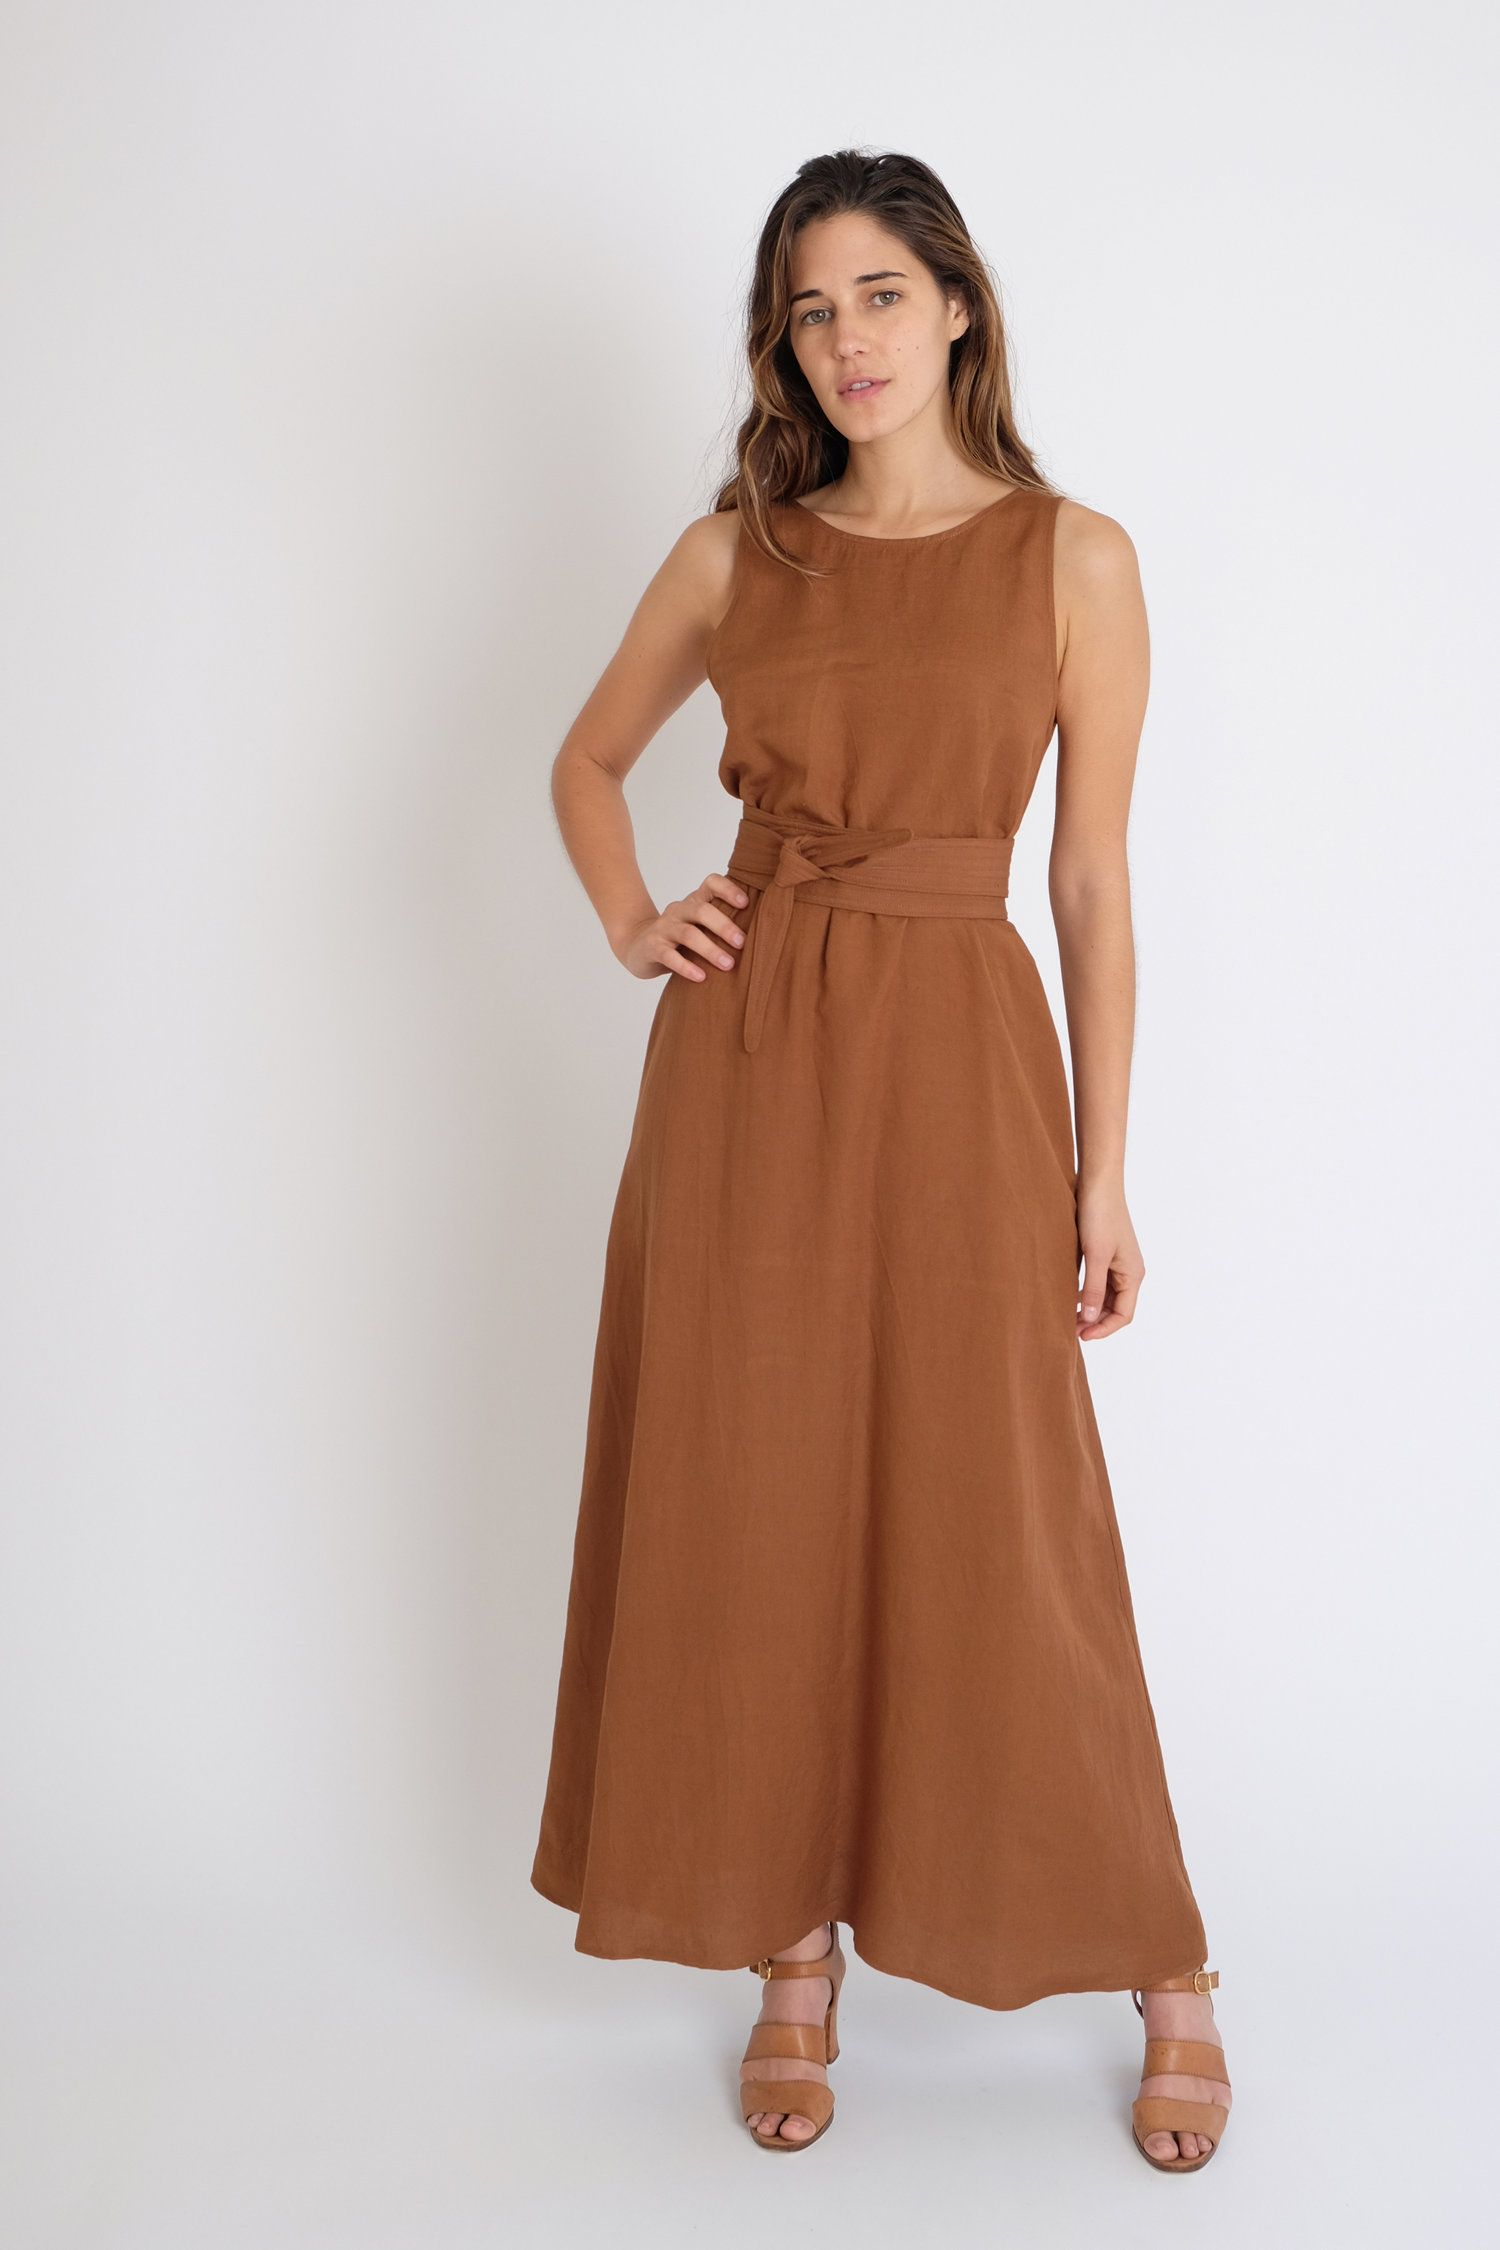 Palma Dress Clay Jesse Kamm